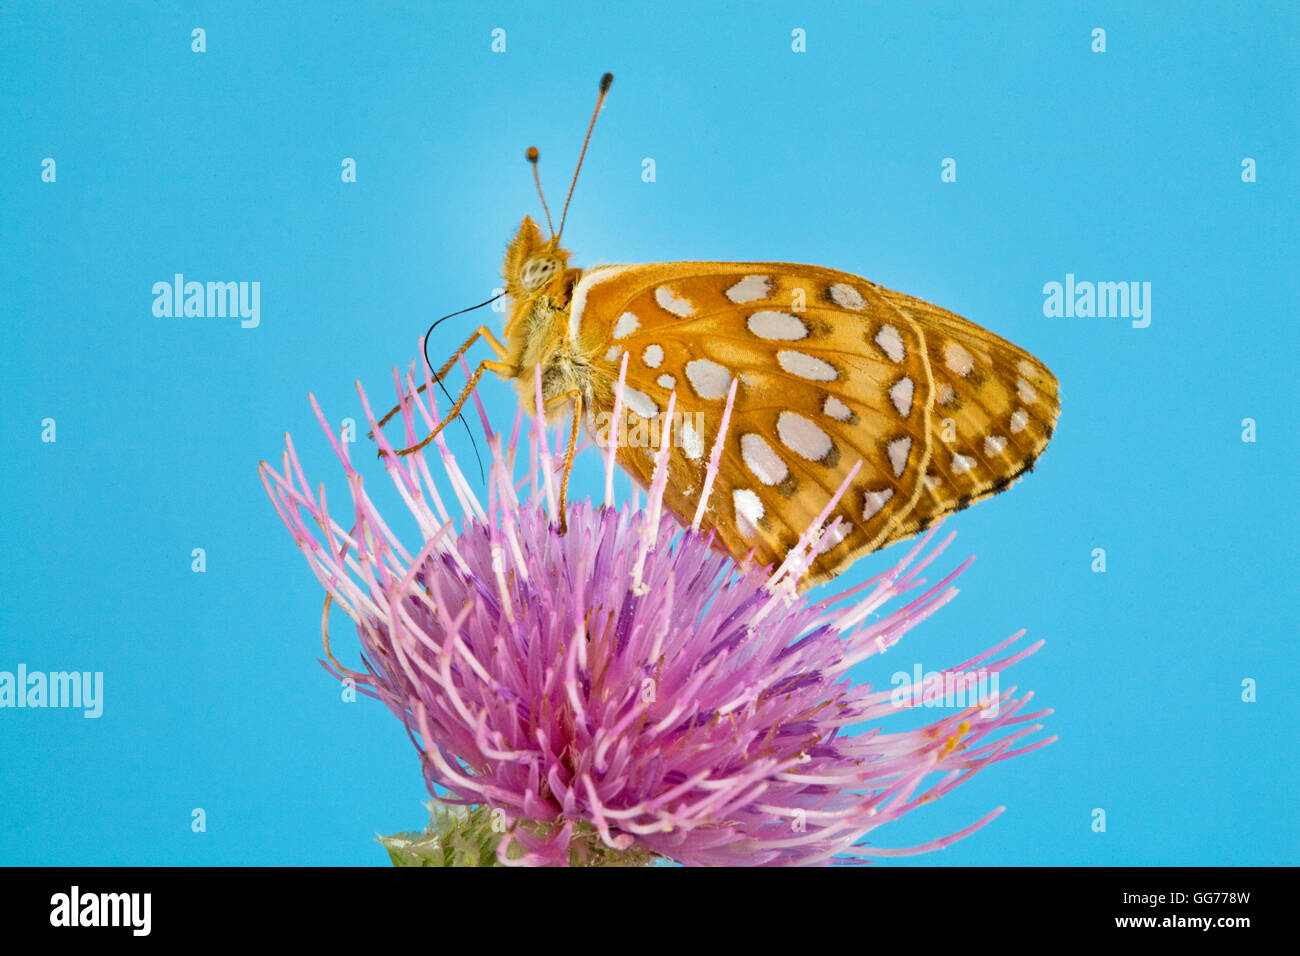 A Great Spangled Fritillary butterfly, Speyeria cybele , lit on a Bull thistle (Cirsium vulgare) seeking nectar. - Stock Image